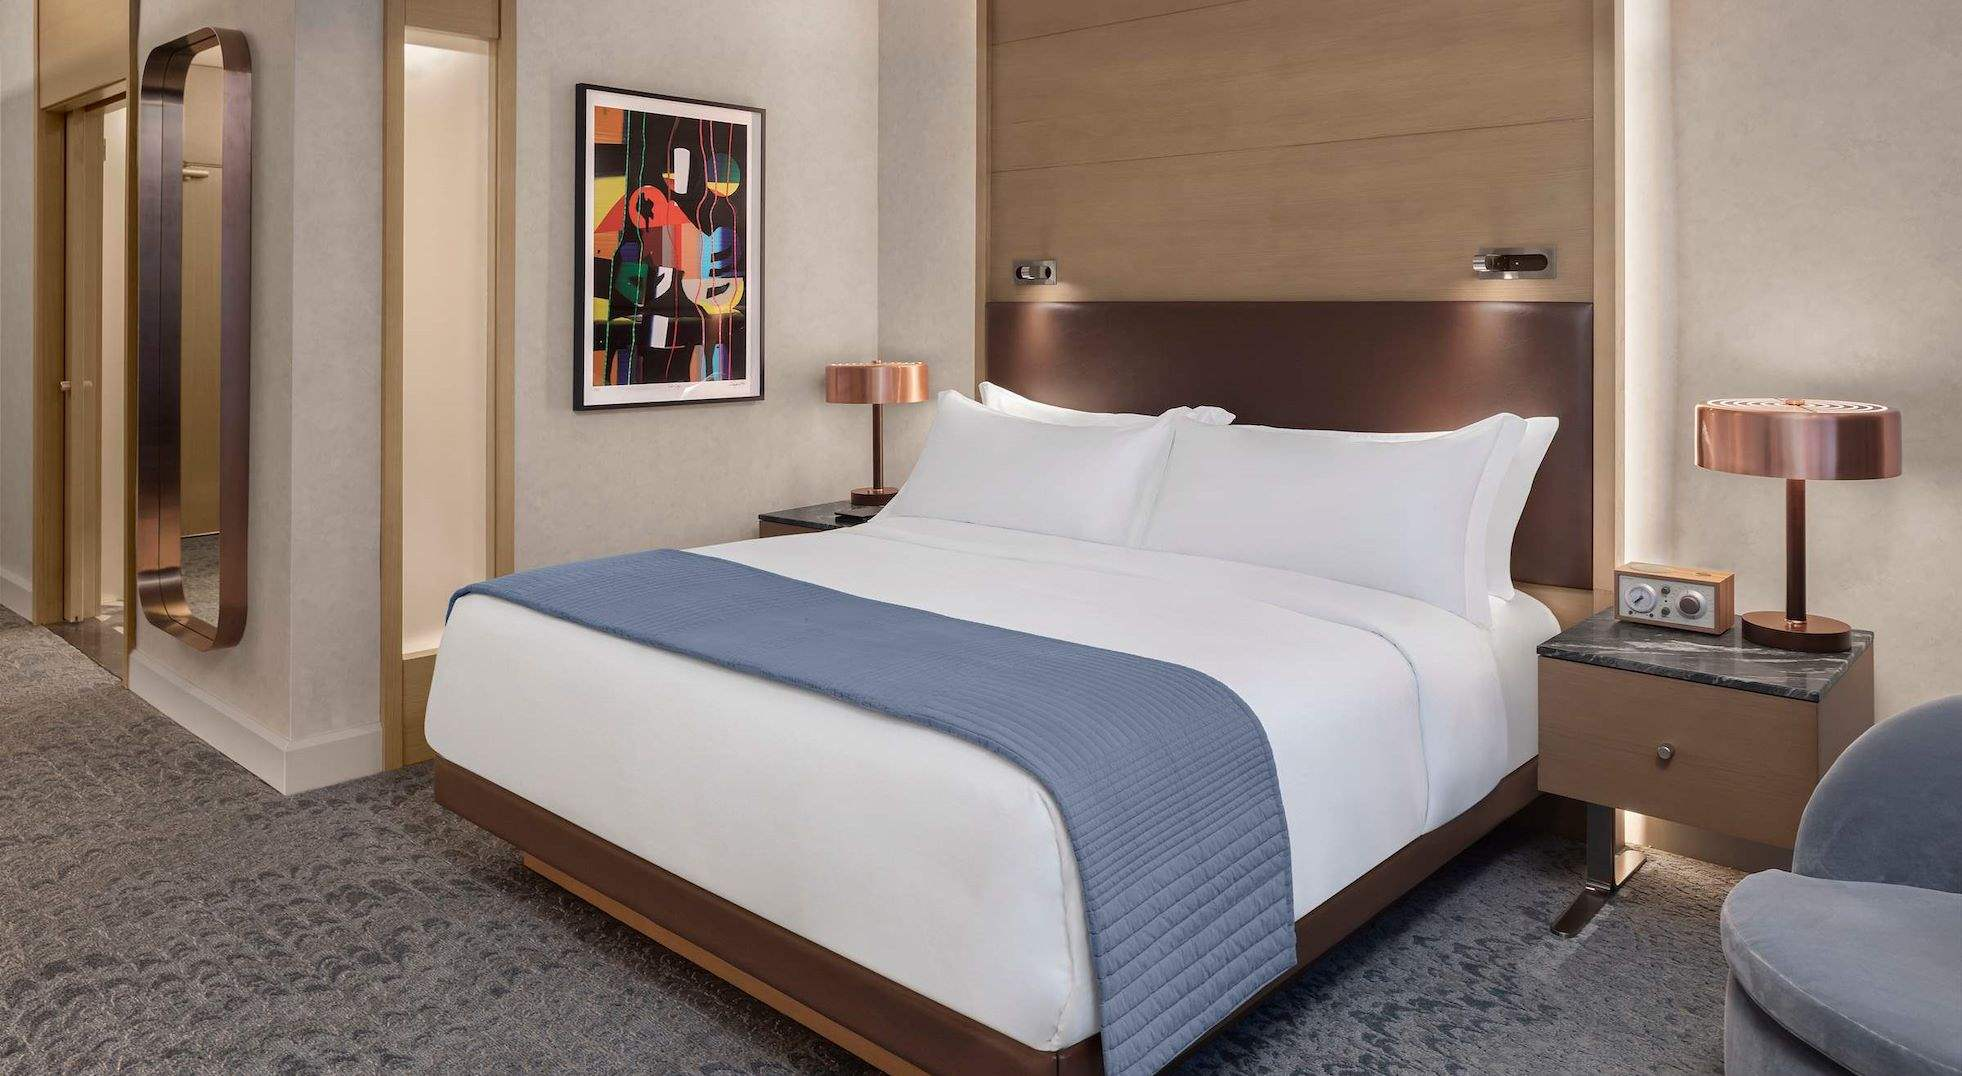 Deluxe King Guest Room at The Joseph Hotel, Nashville